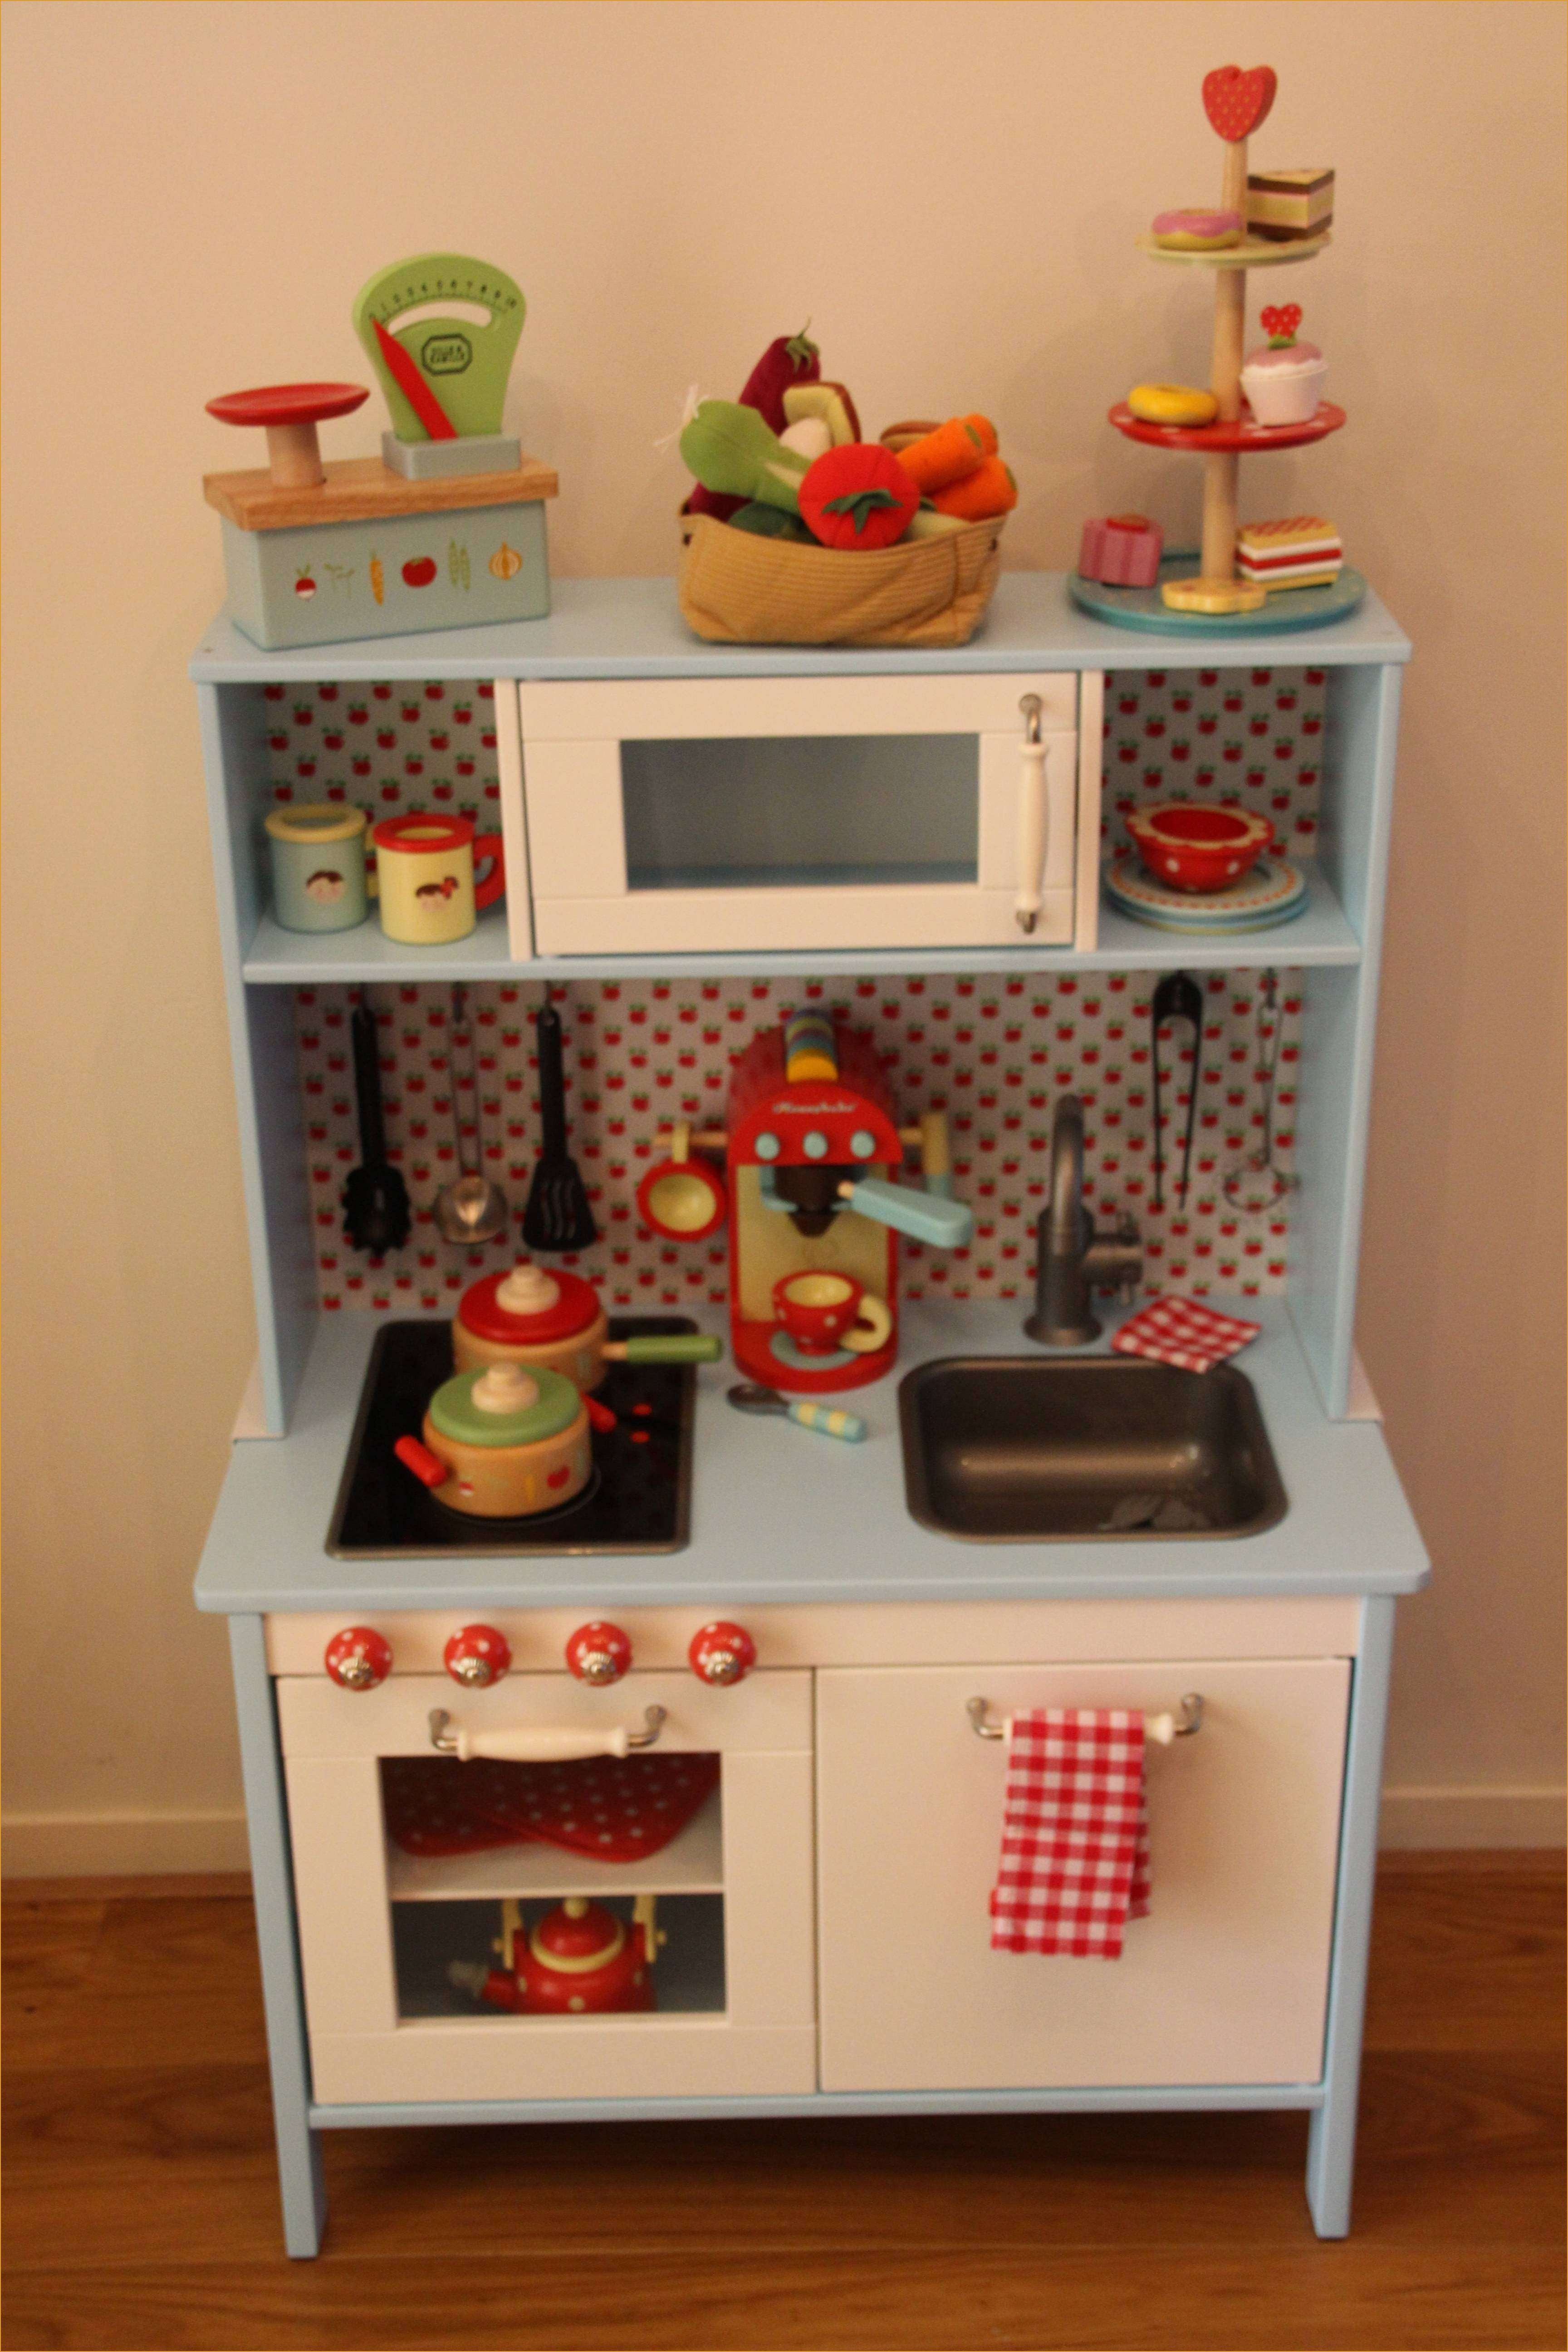 Simple Large Bathroom Remodel Ideas Ikea toy kitchen